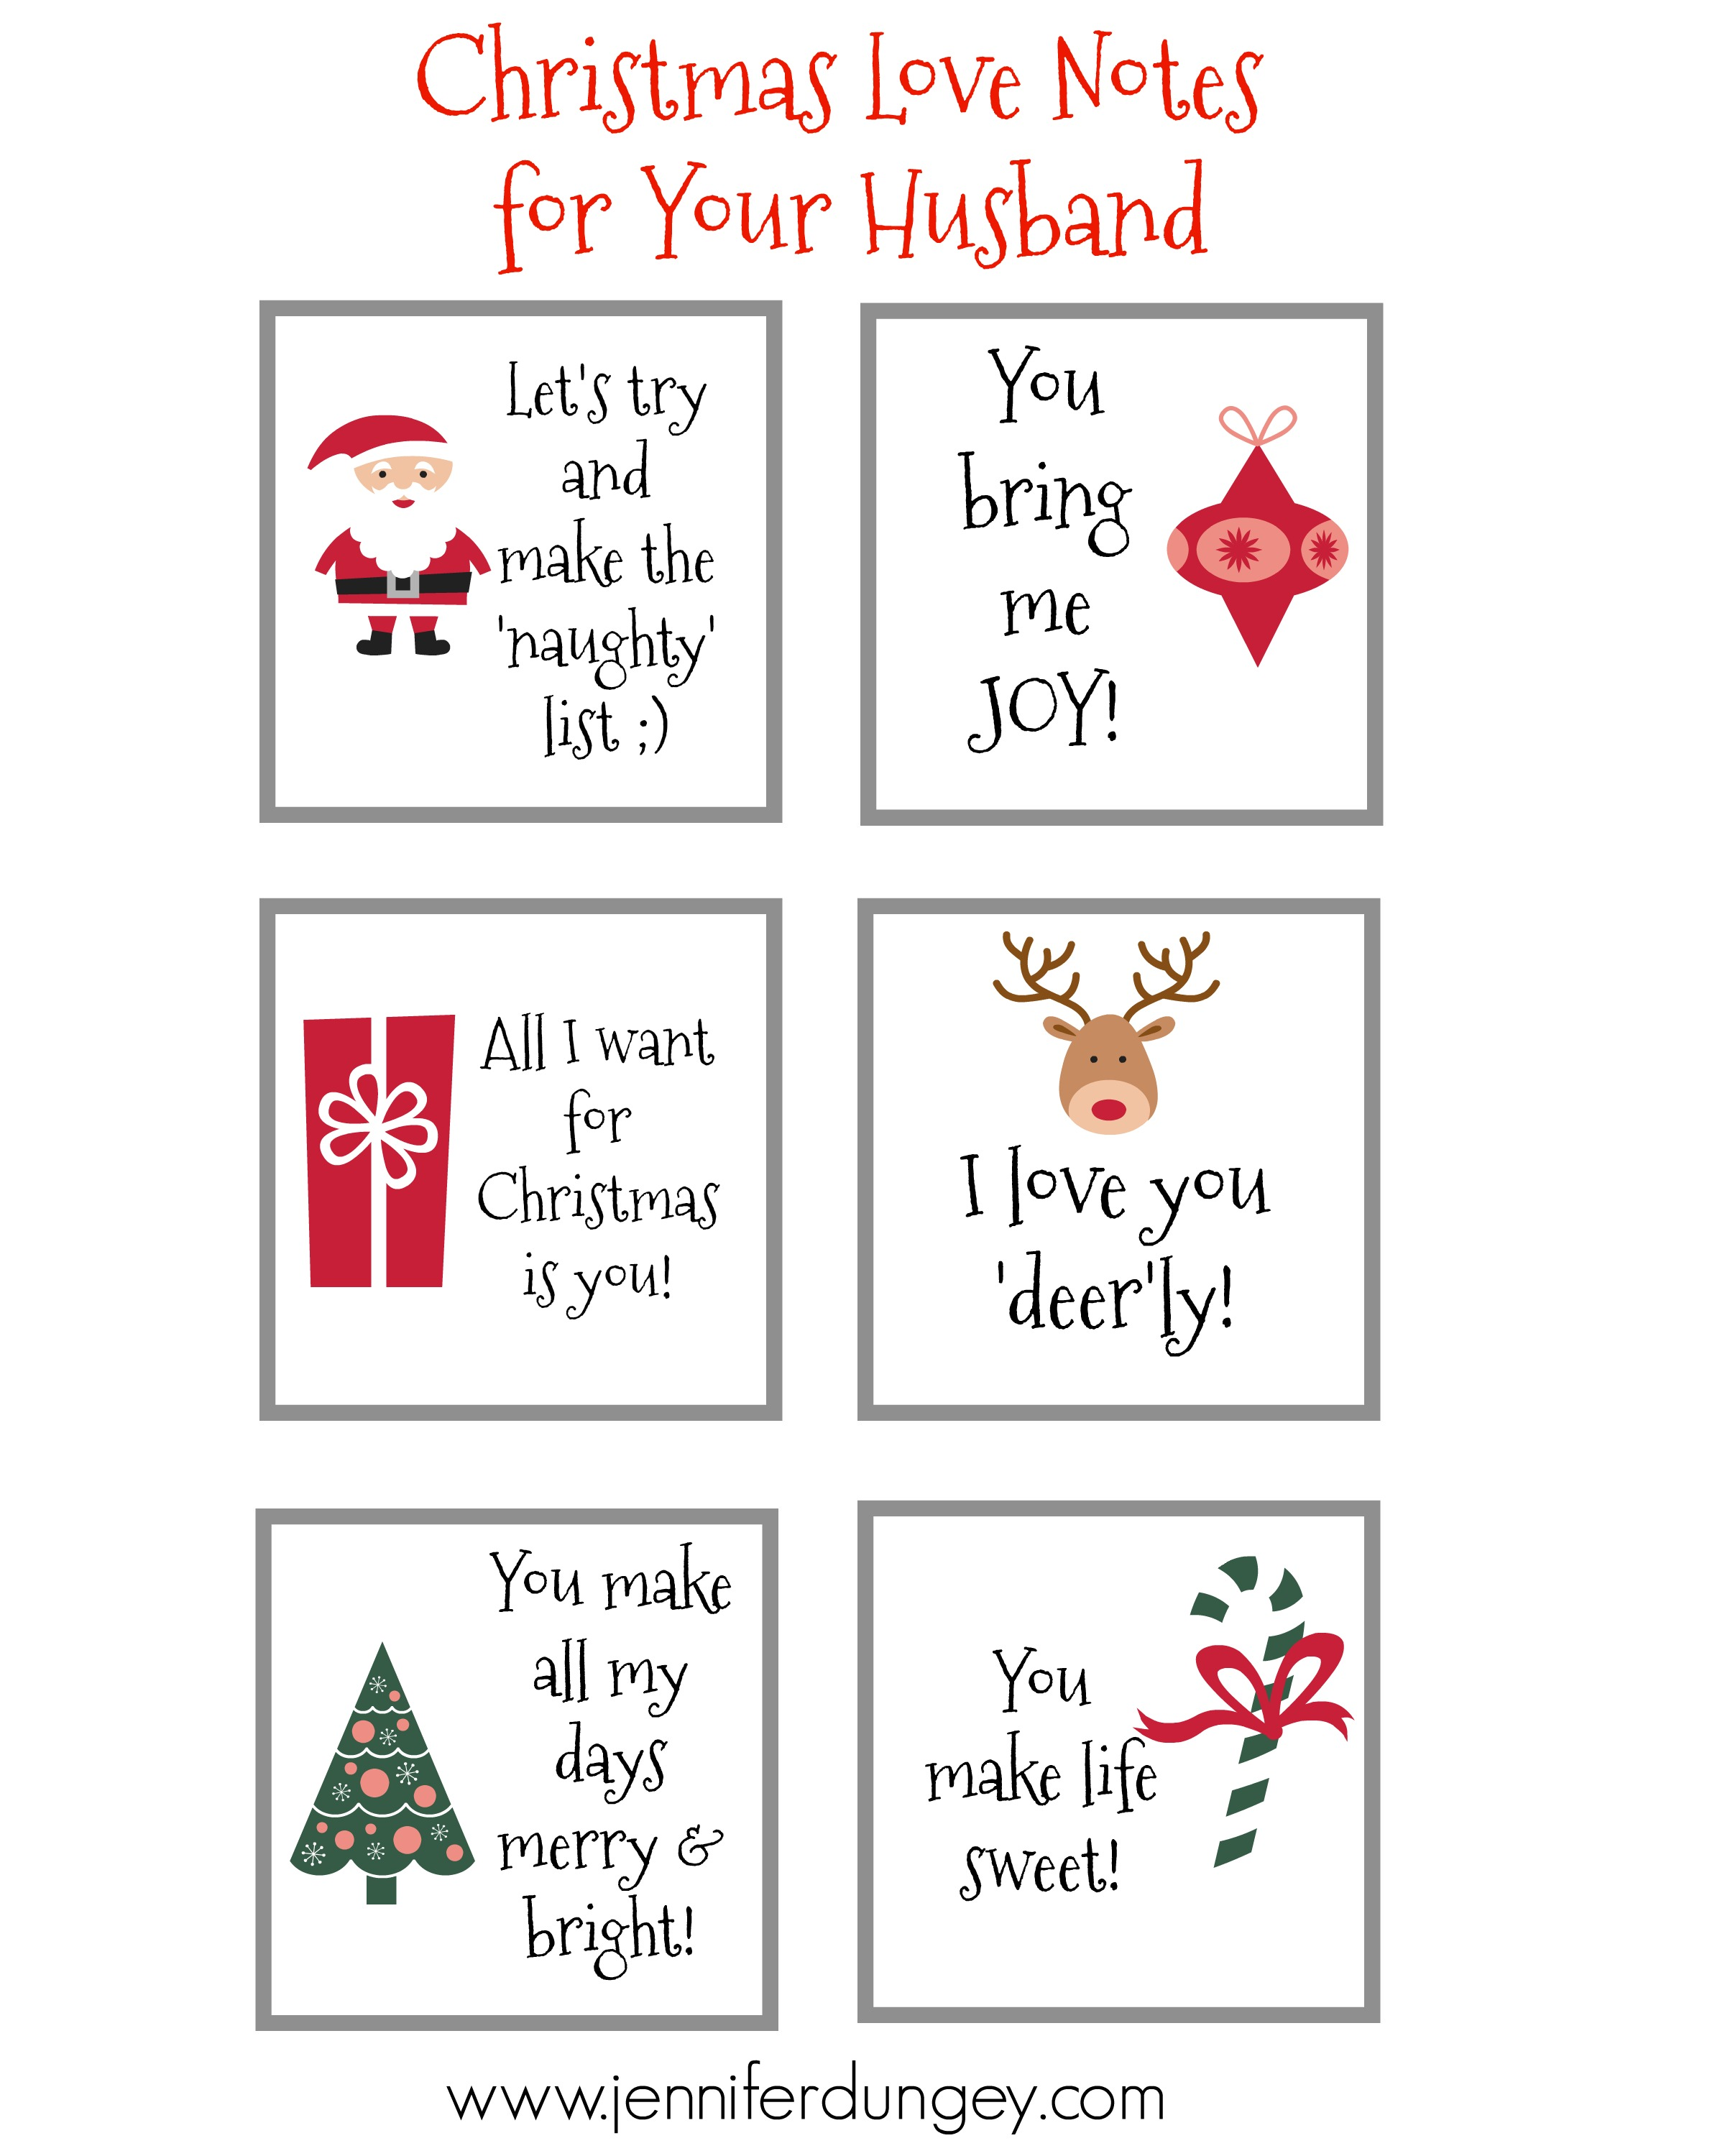 christmas love notes for your husband {free printable}! - jennifer